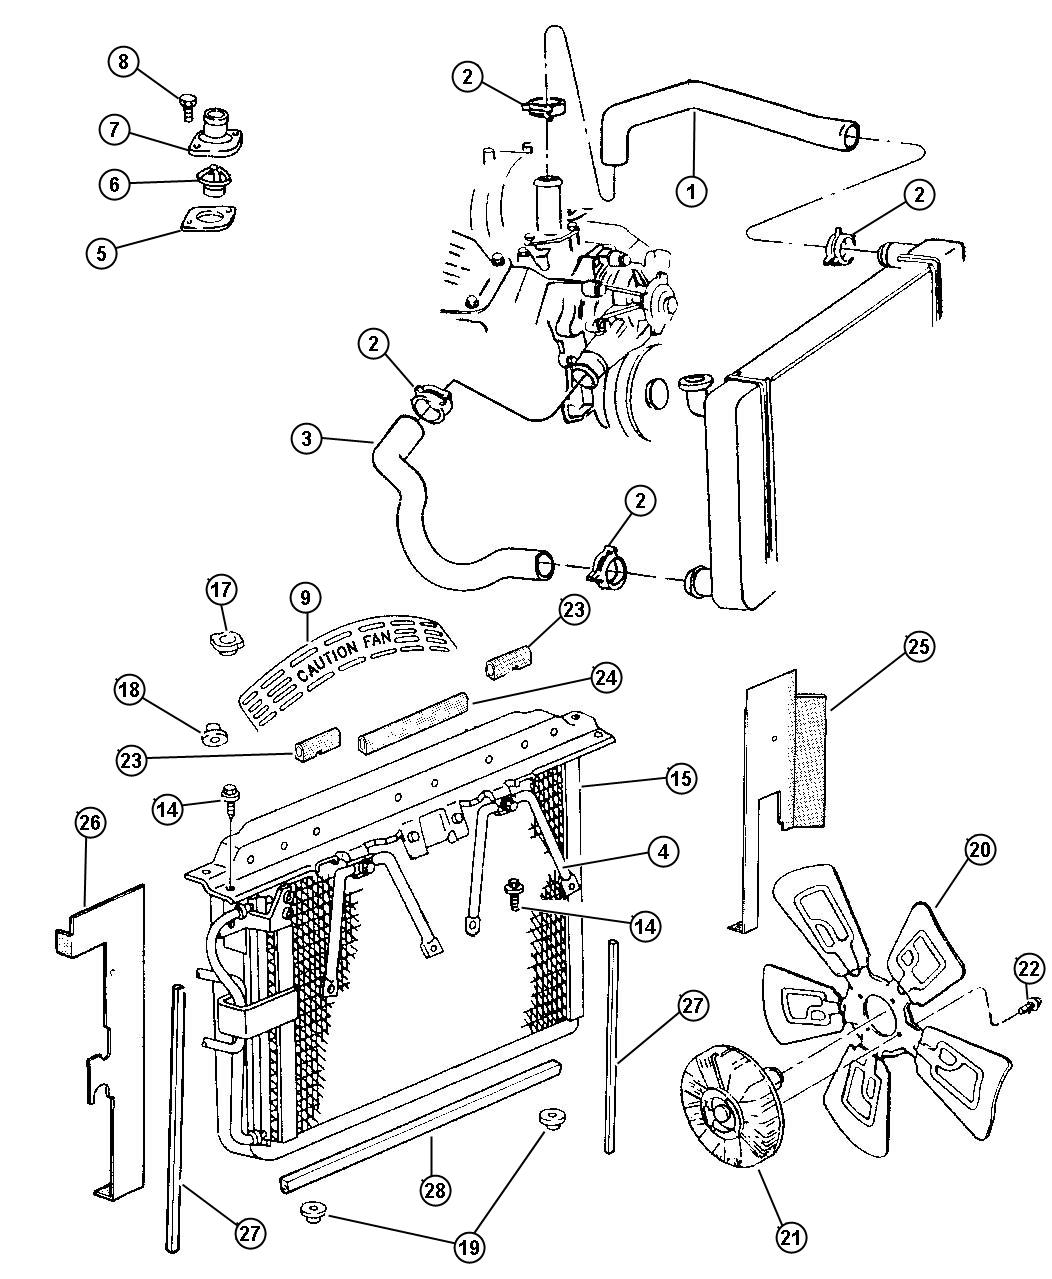 Service manual [1998 Jeep Grand Cherokee Remove Engine